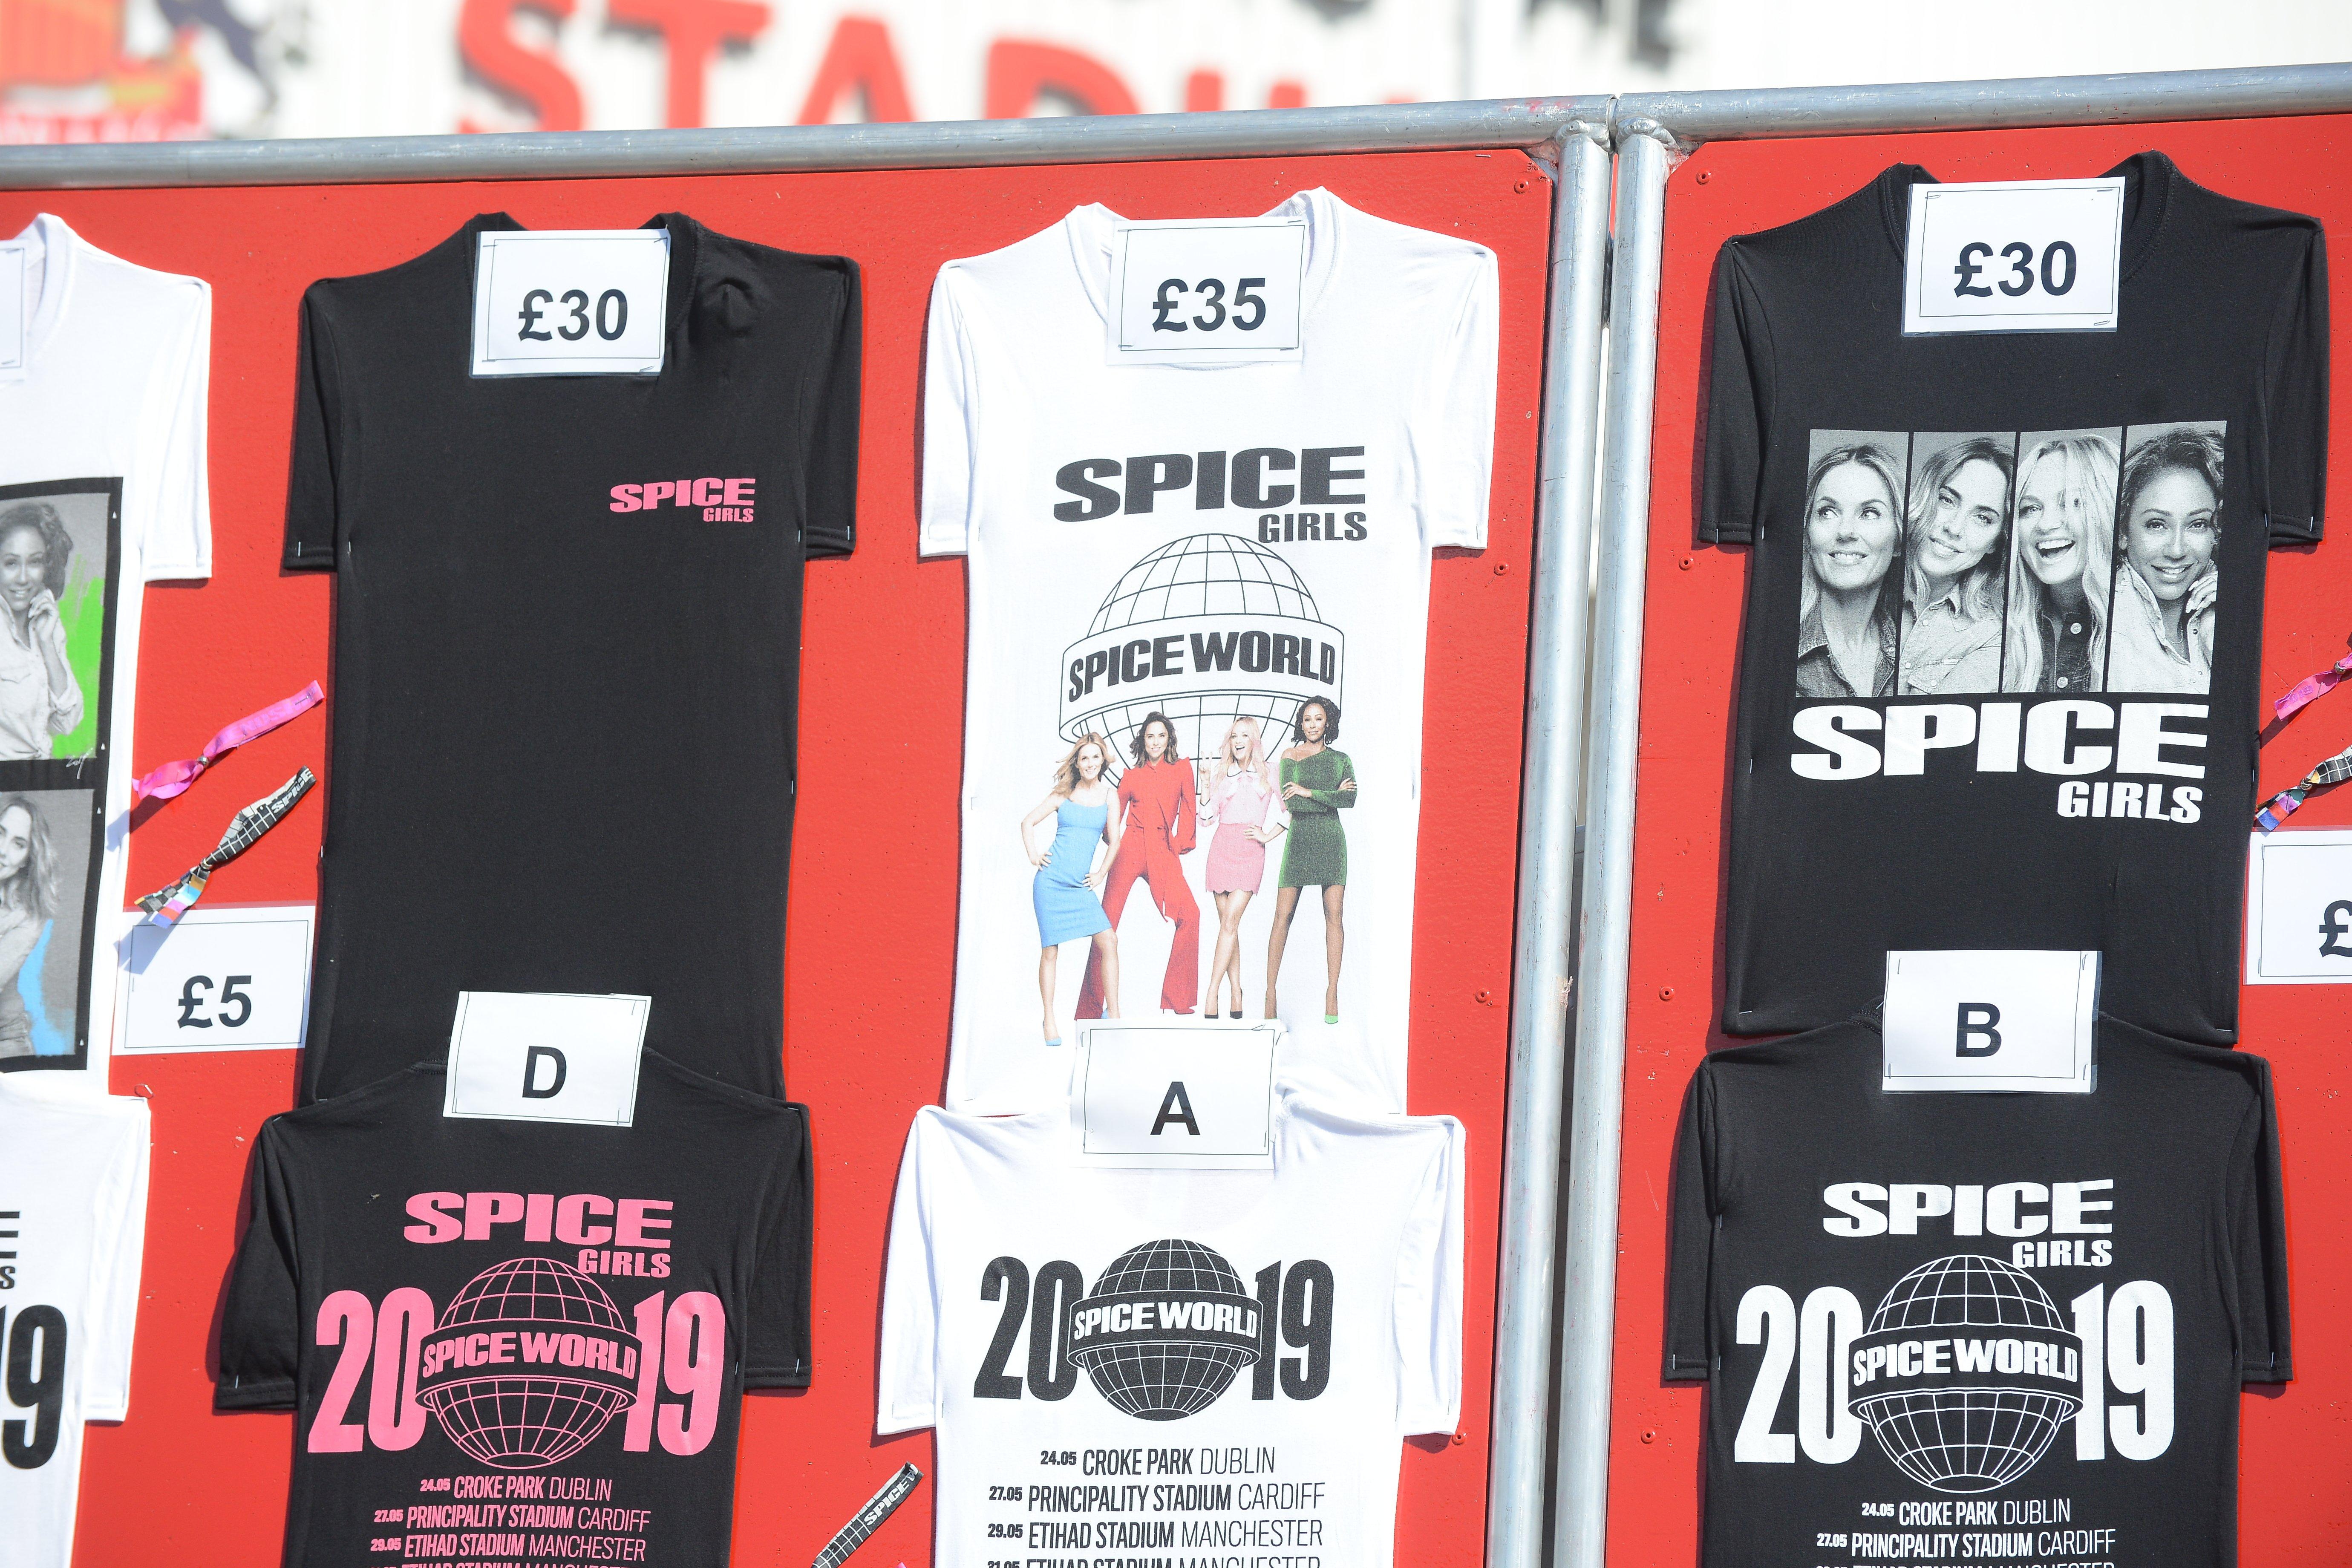 339a02153 Merchandise prices at the Stadium of Light Spice Girls concert ...